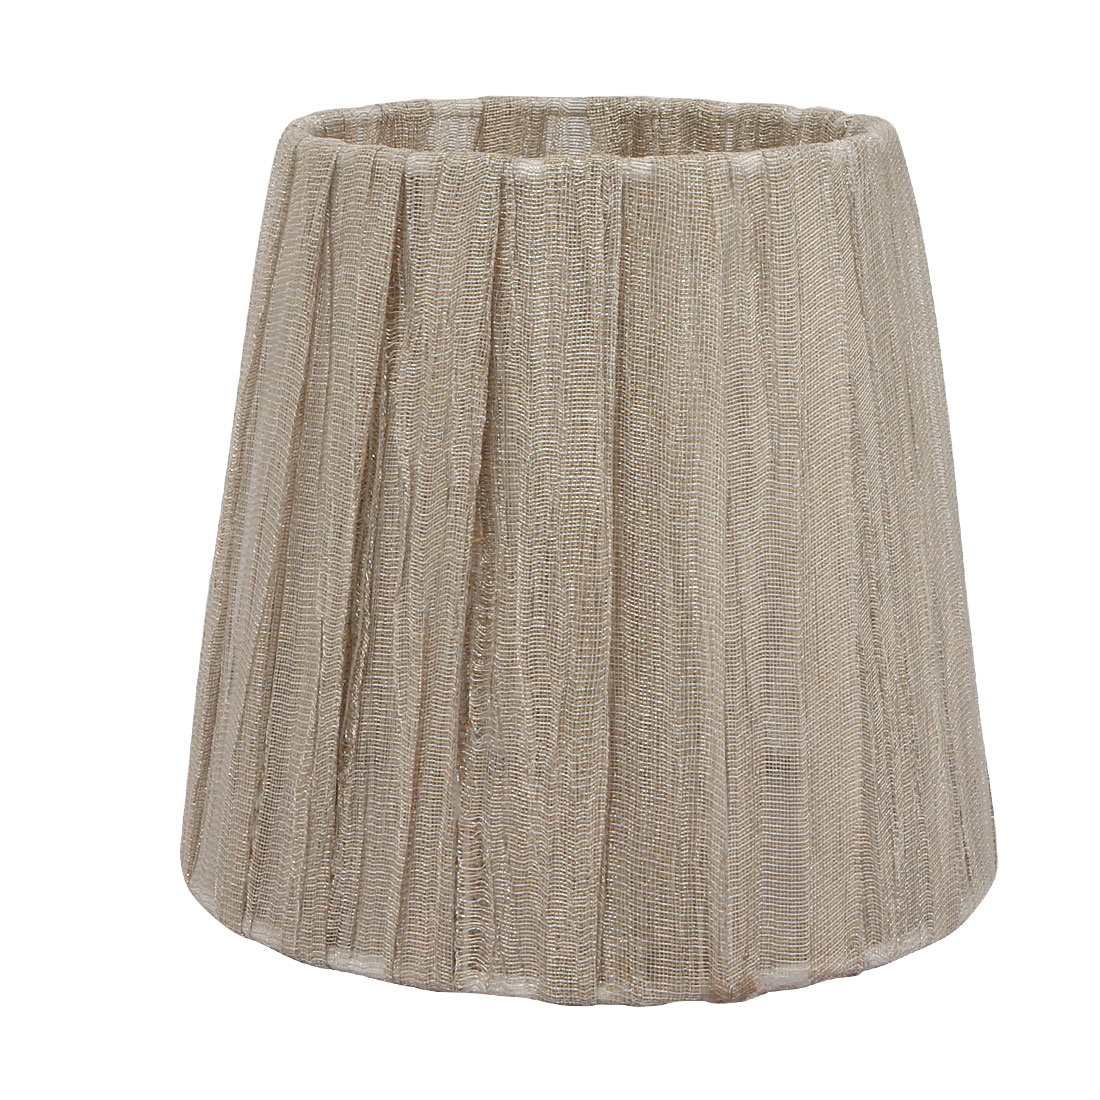 110mmx150mmx140mm E14 Fabric-covered Khaki Lamp Shade Lamp Cover for Wall Lamp